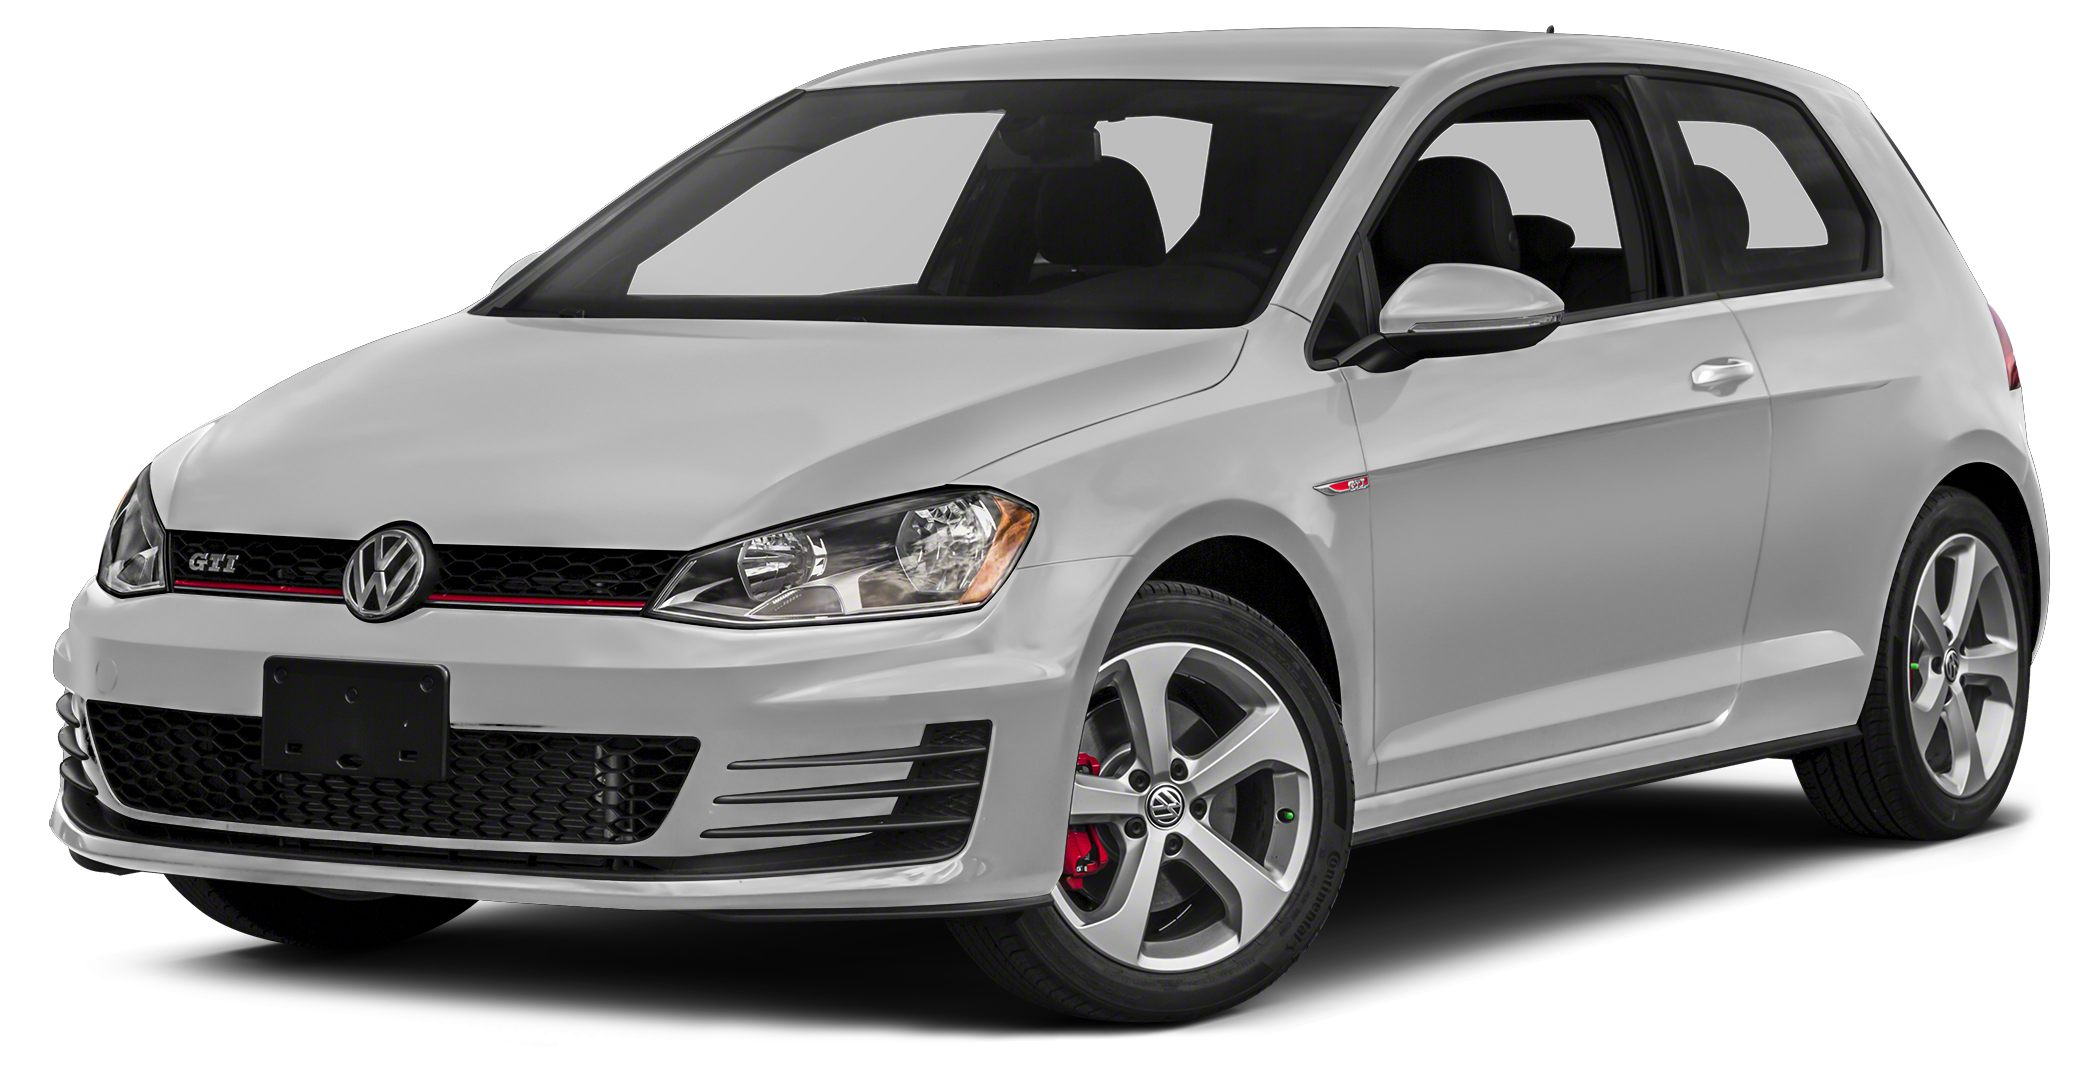 2015 Volkswagen Golf GTI S WE SELL OUR VEHICLES AT WHOLESALE PRICES AND STAND BEHIND OUR CARS